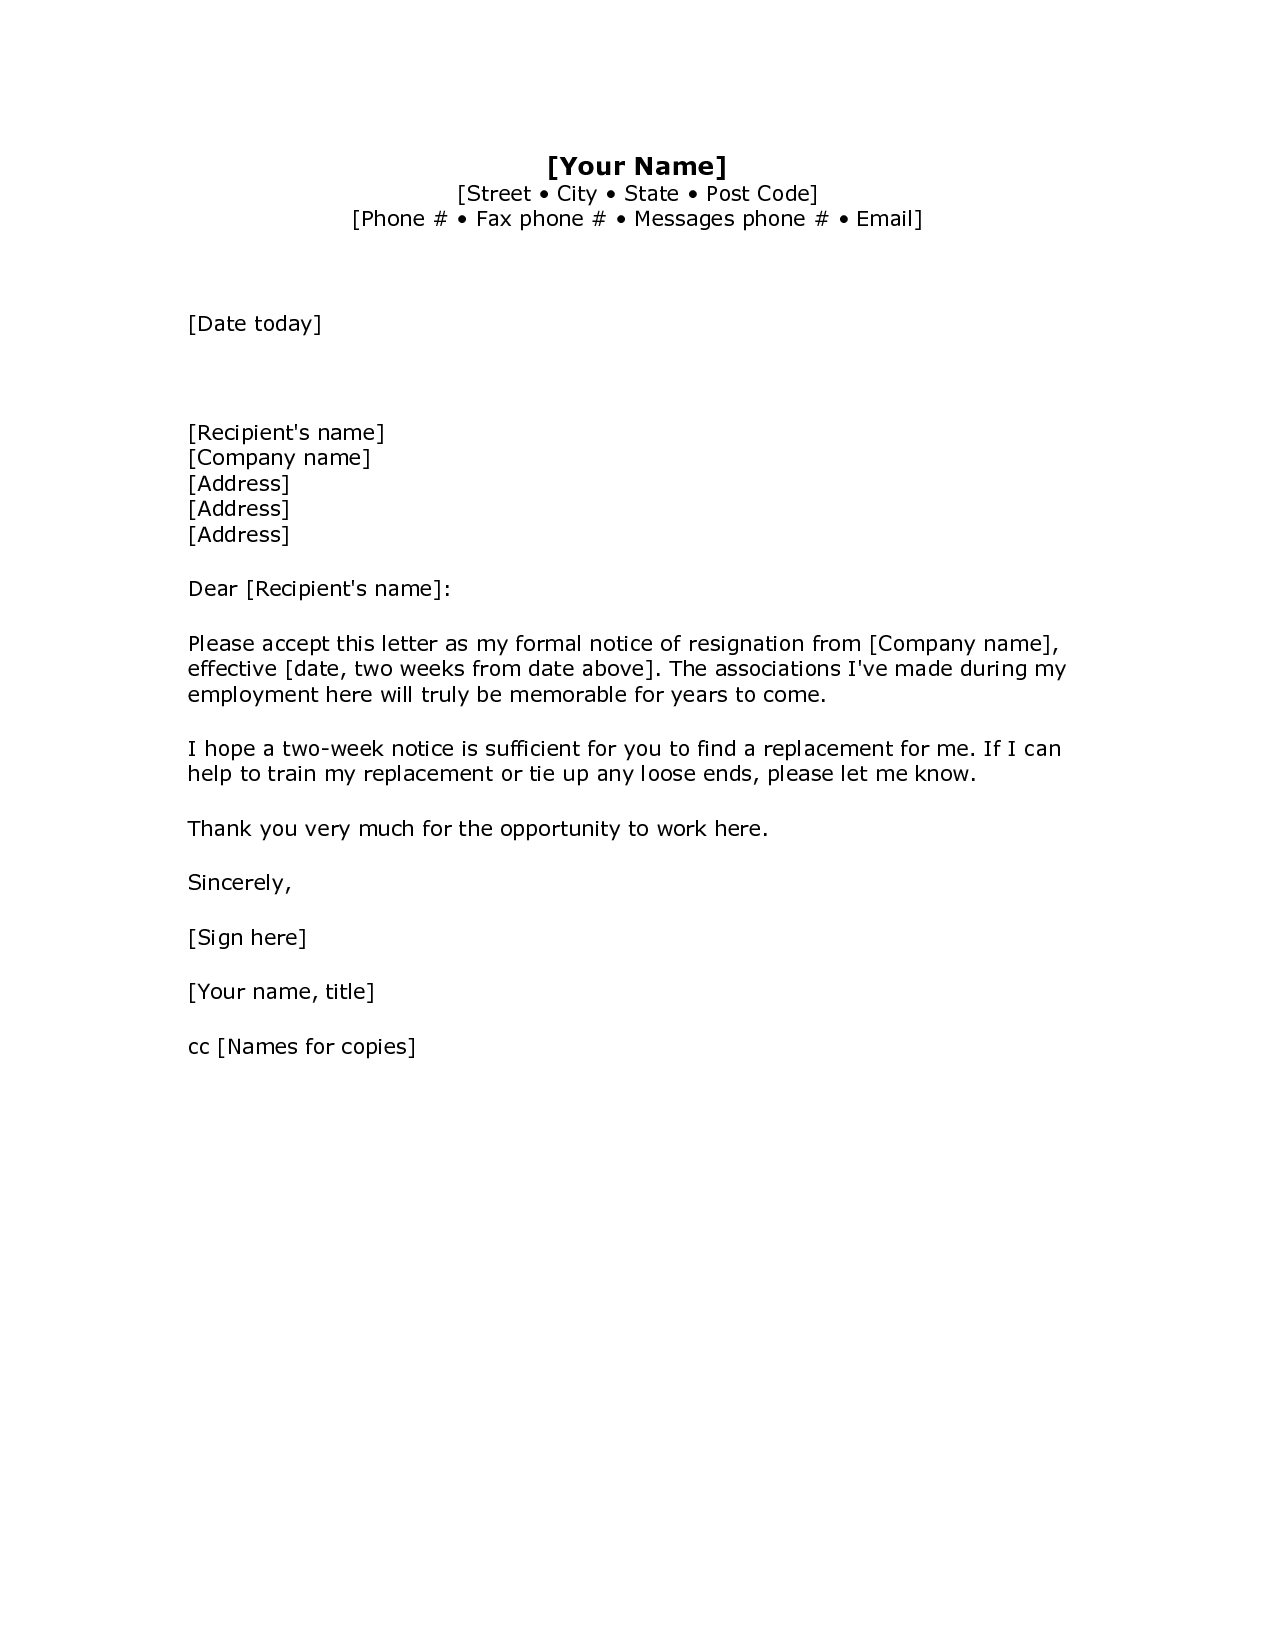 Cease and Desist Letter Template Business Name - 2 Weeks Notice Letter Resignation Letter Week Notice Words Hdwriting